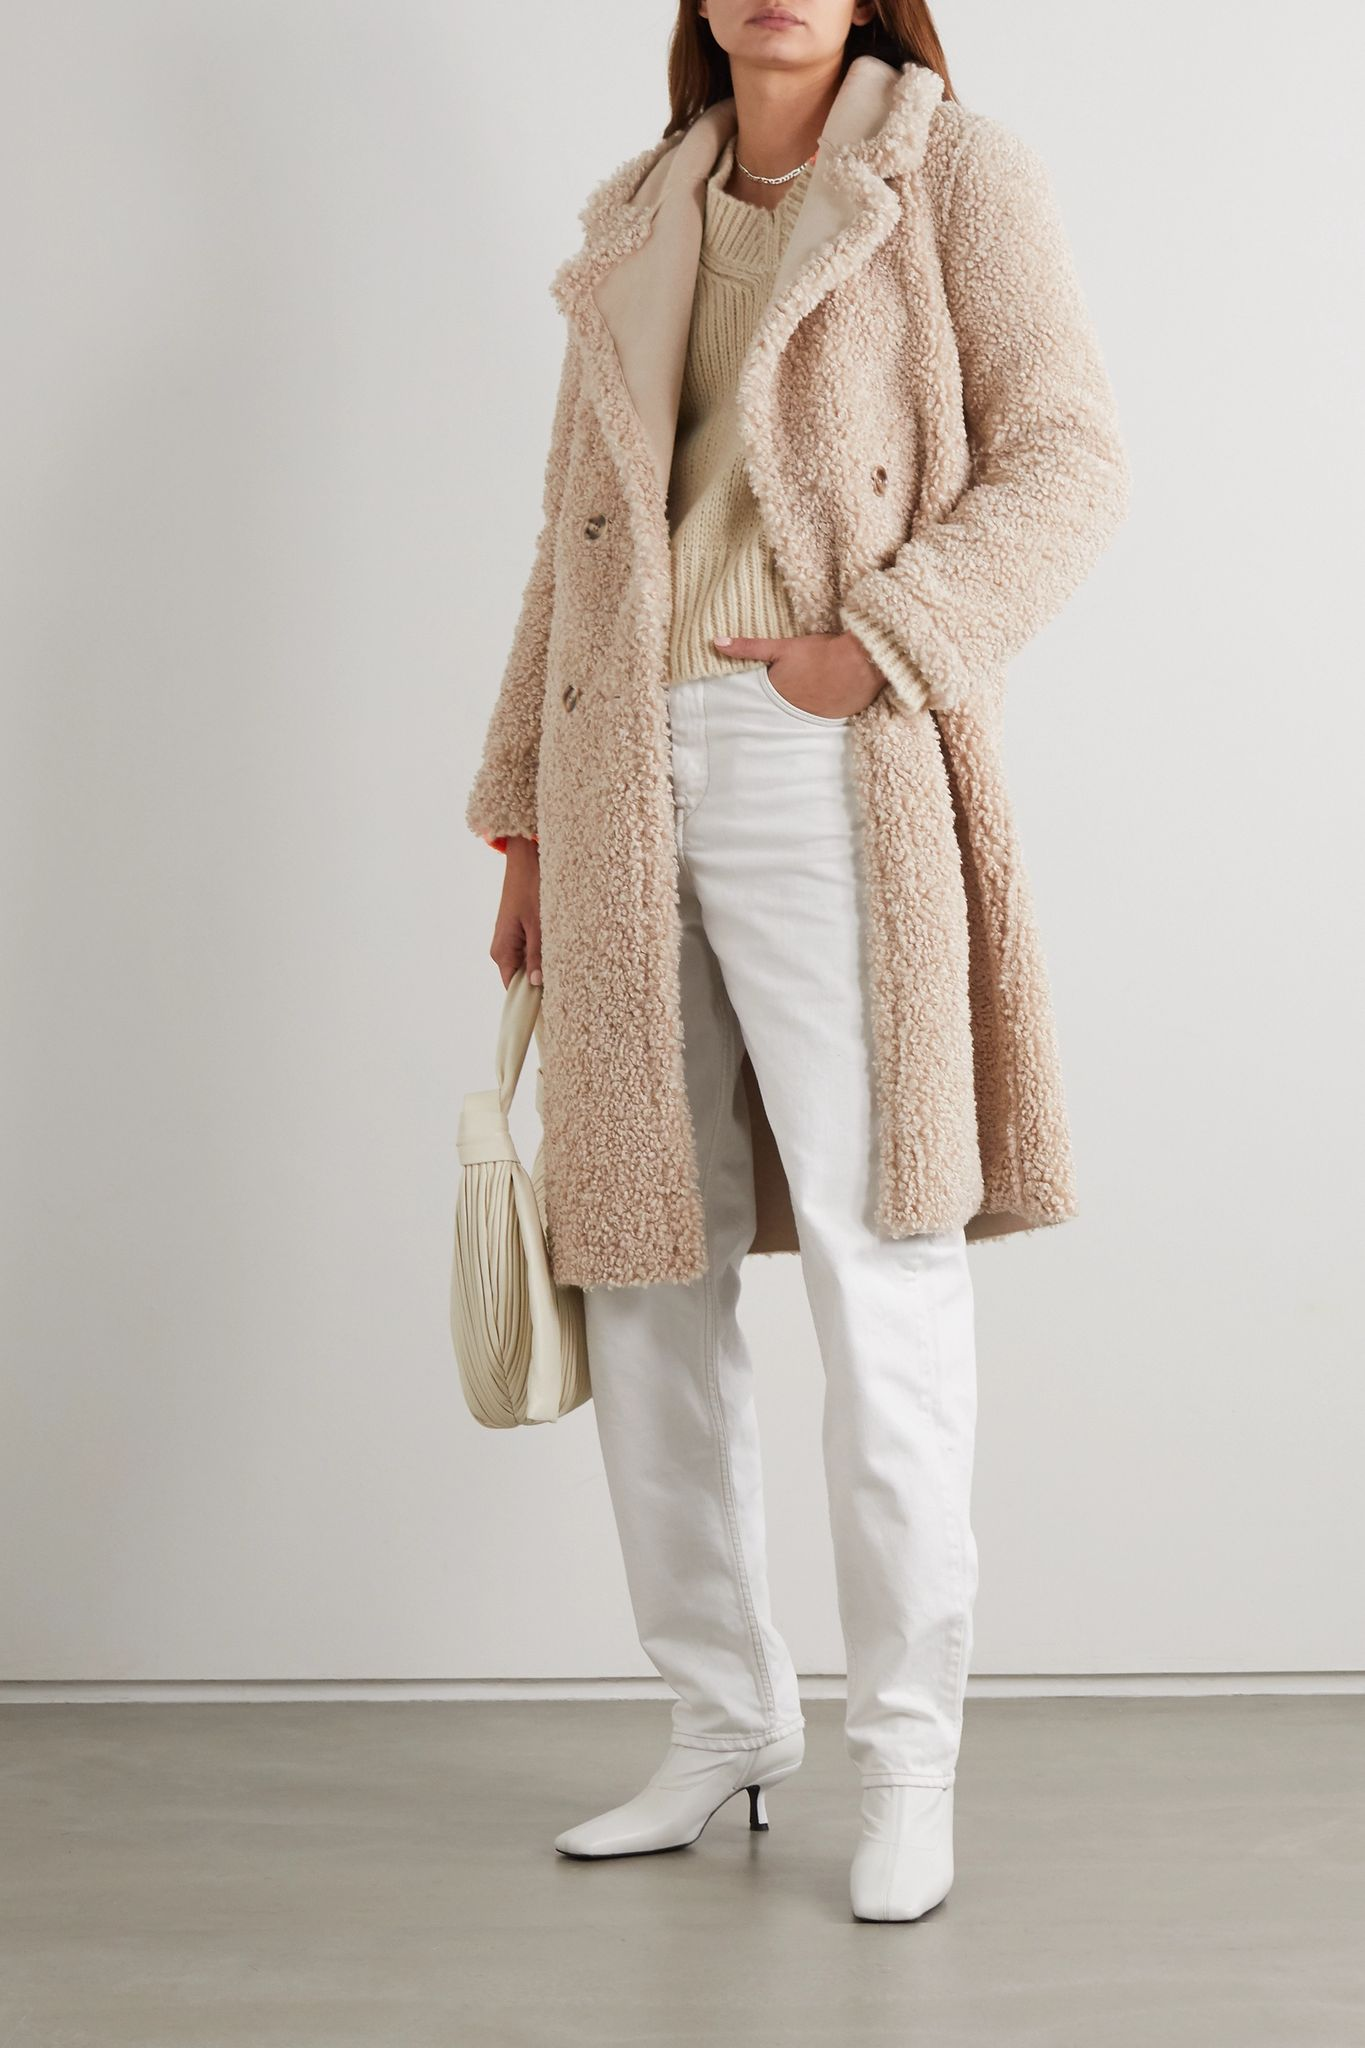 How To Style A Shearling Teddy Coat — Styling Net-a-Porter Winter Outfit Ideas